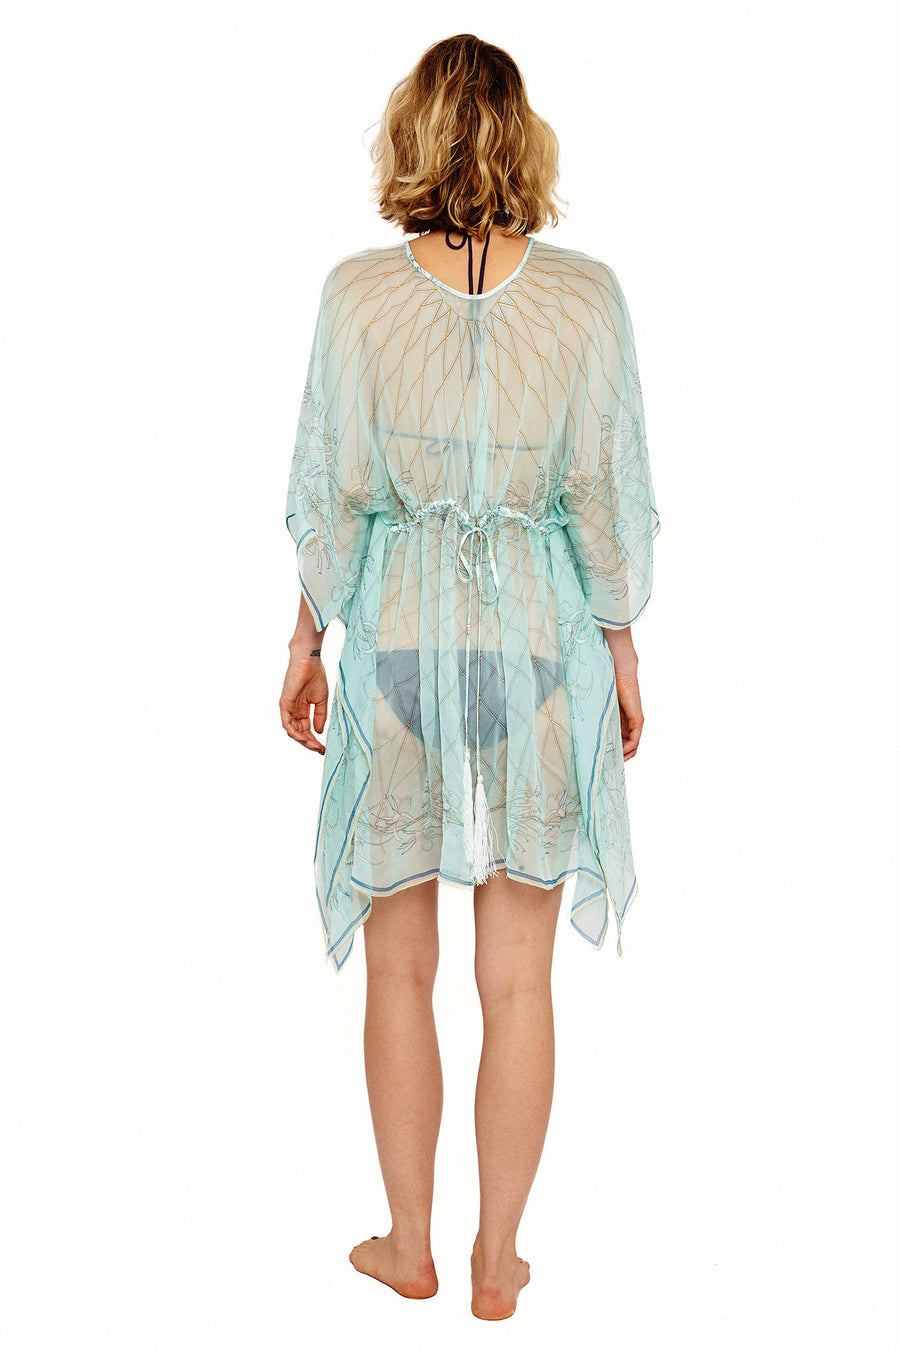 Lotty B Short Kaftan in Silk Chiffon (Spiderlily Pale Blue) Front